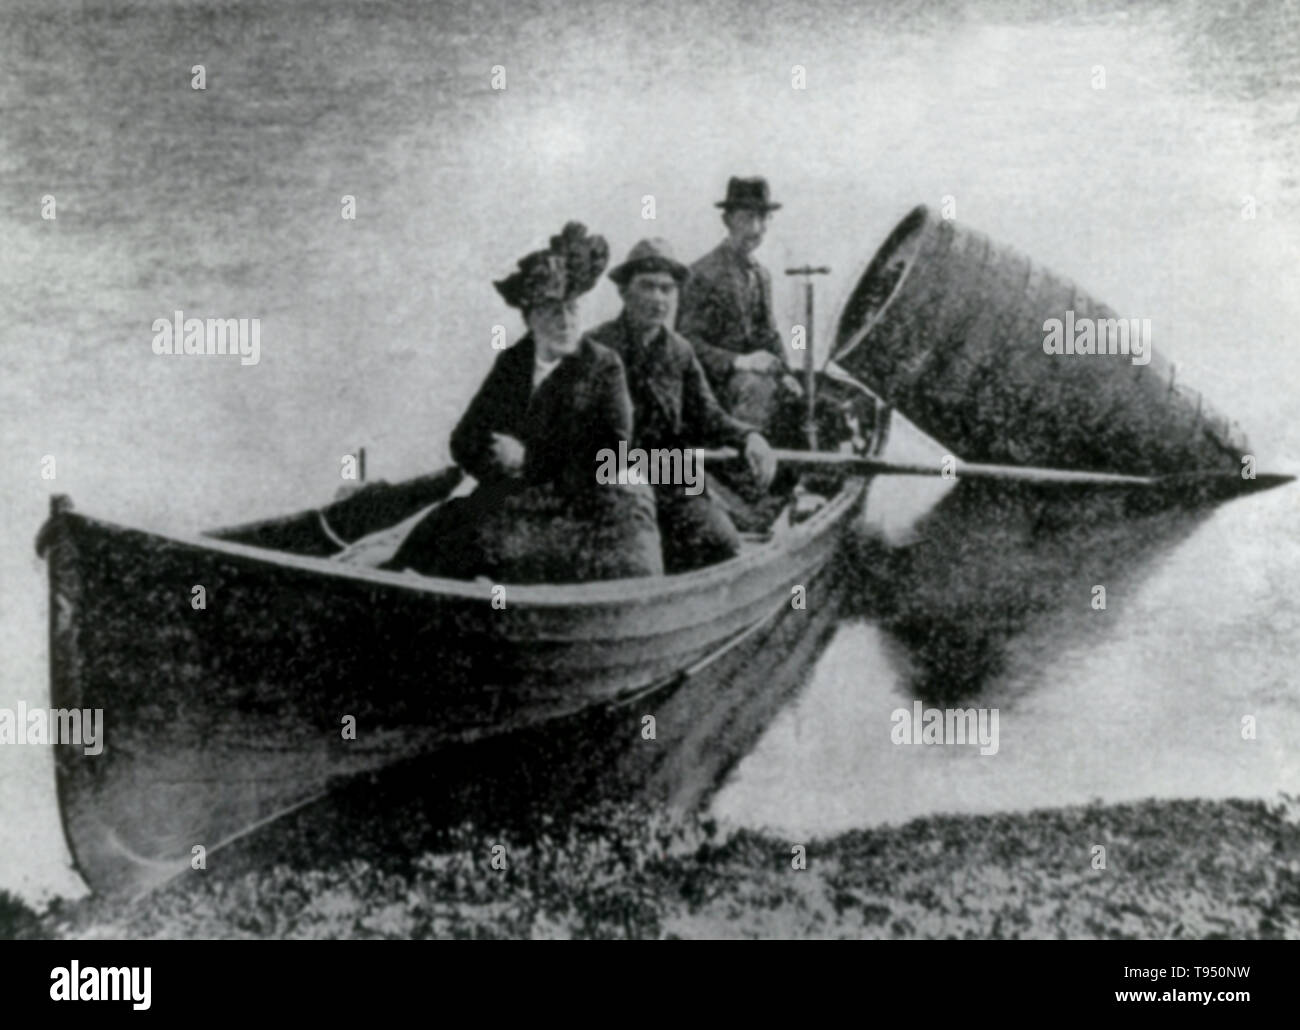 Annie Edson Taylor (October 24, 1838 - April 29, 1921) was an American teacher. Desiring to secure her later years financially, she decided she would be the first person to ride over Niagara Falls in a barrel. Taylor used a custom-made barrel for her trip, constructed of oak and iron and padded with a mattress. On October 24, 1901, her 63rd birthday, the barrel was put over the side of a rowboat, and Taylor climbed in, along with her lucky heart-shaped pillow. Stock Photo